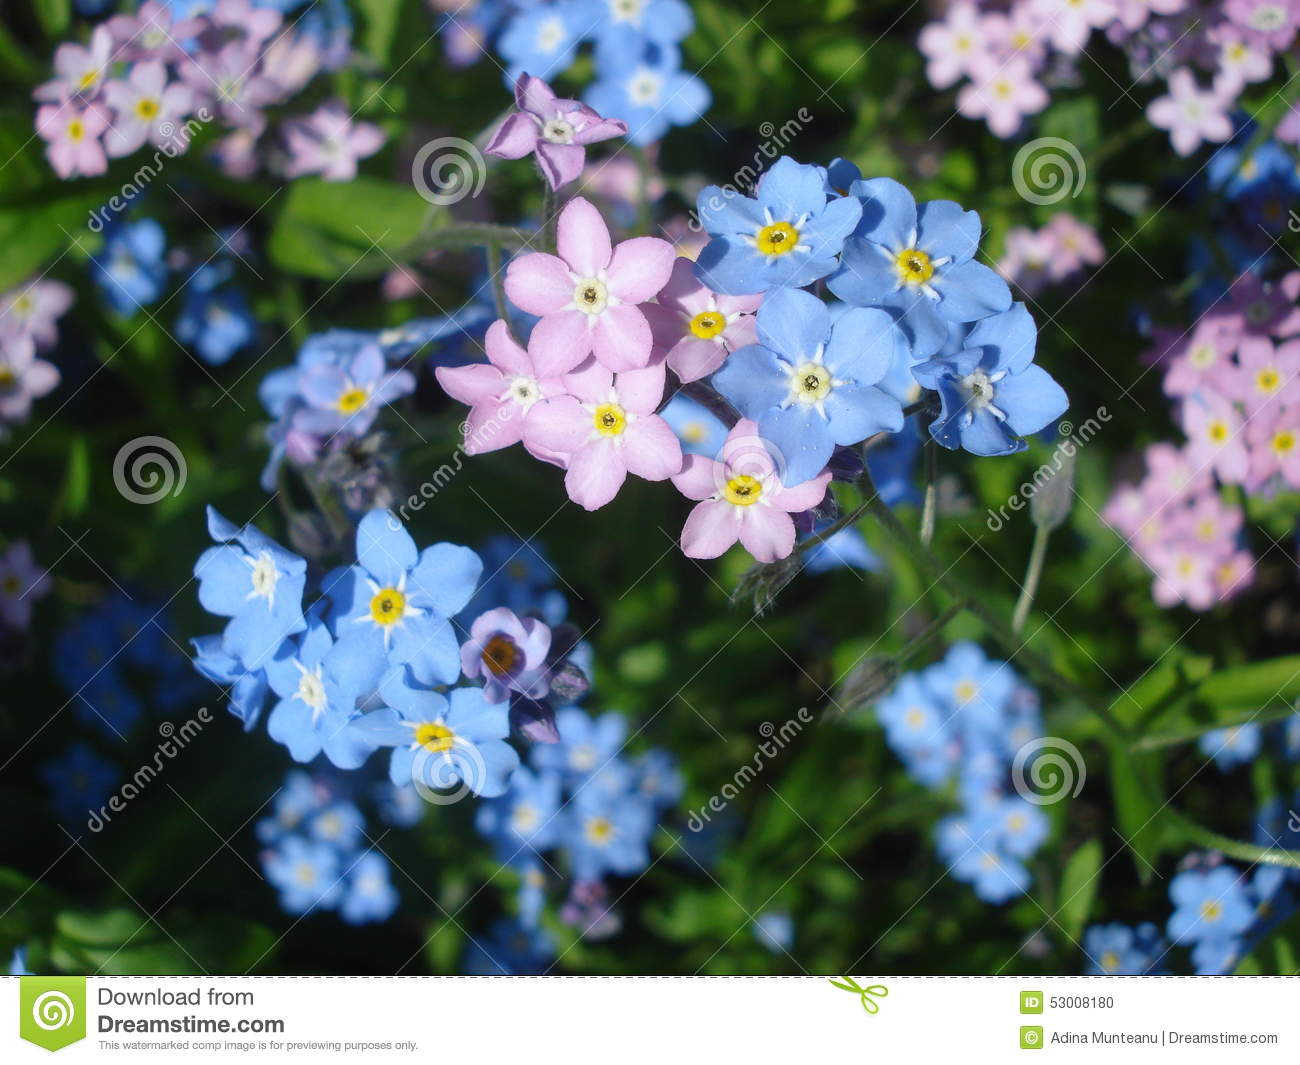 Blue and pink forget me not flowers stock photo image of flower download blue and pink forget me not flowers stock photo image of flower mightylinksfo